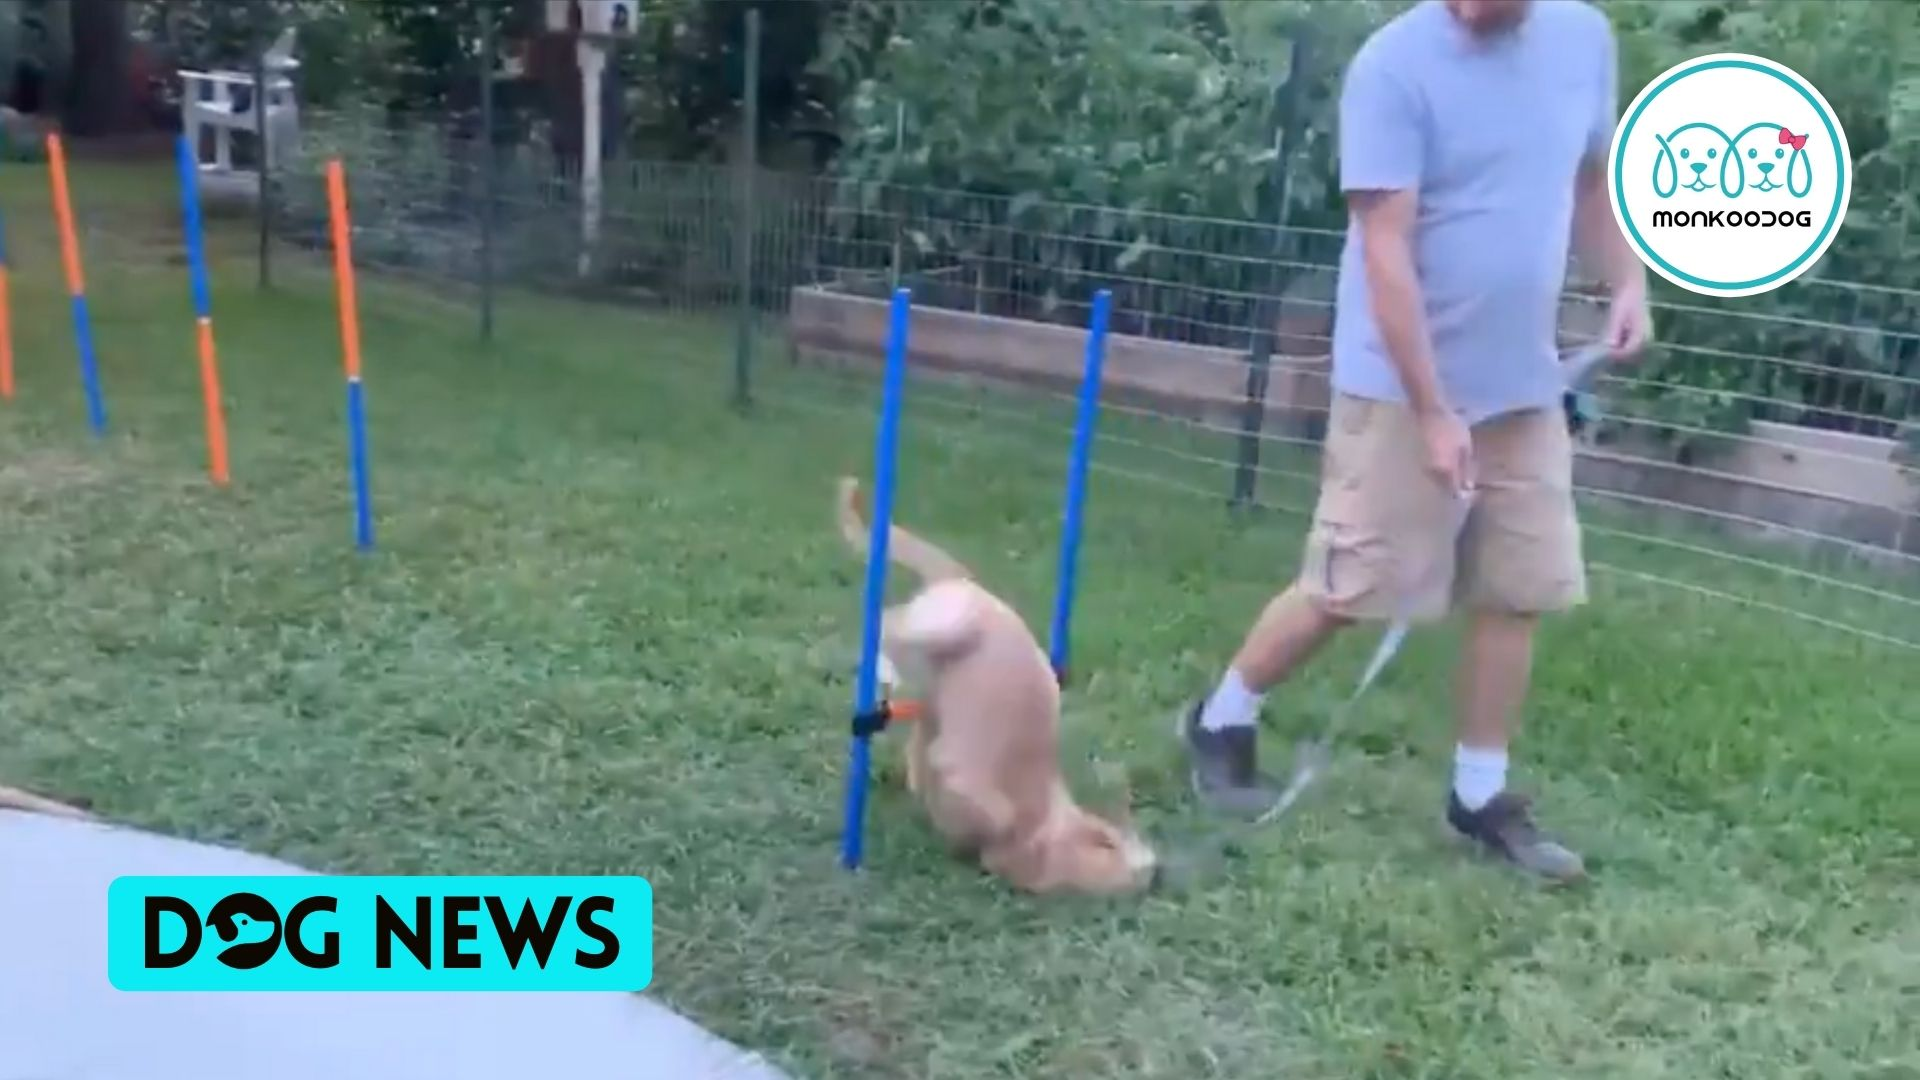 Watch How This Puppy Fails At Dog Obstacle Course In The Most Spectacular Way!